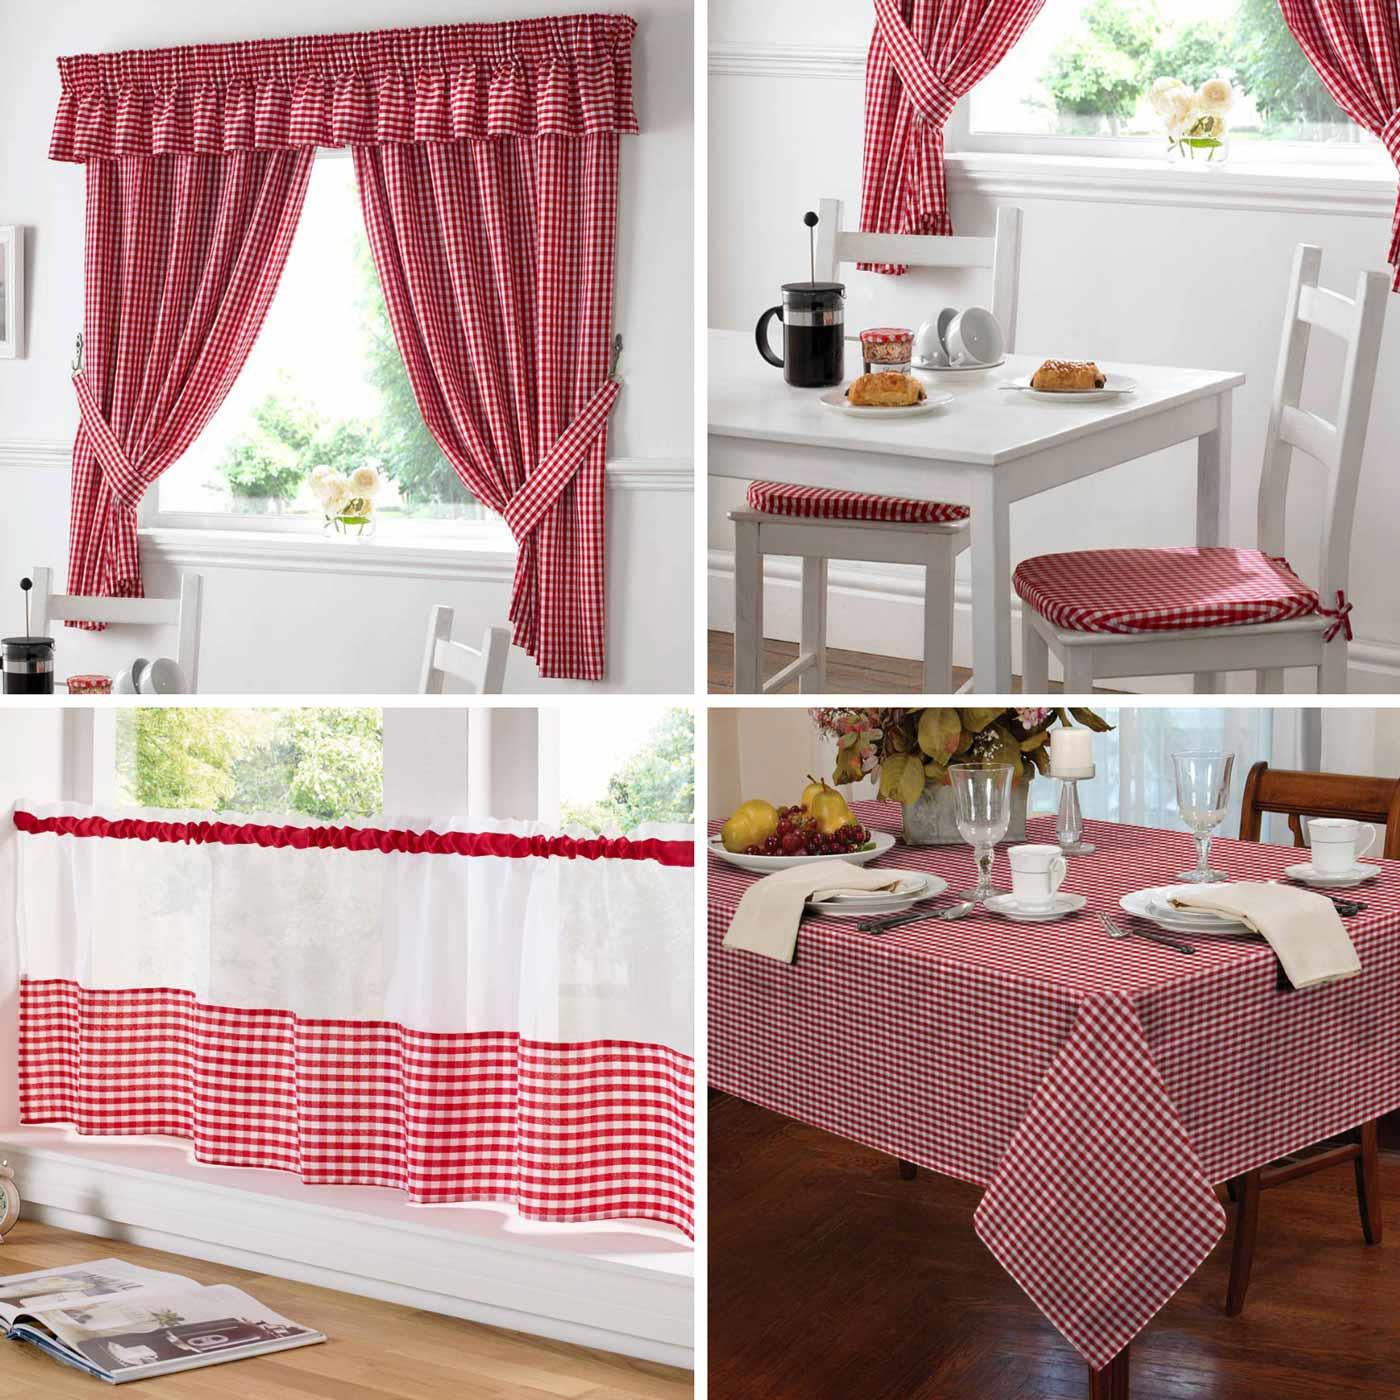 Details About Gingham Kitchen Curtains Set Red Curtain Pairs Cafe Panels Tablecloths